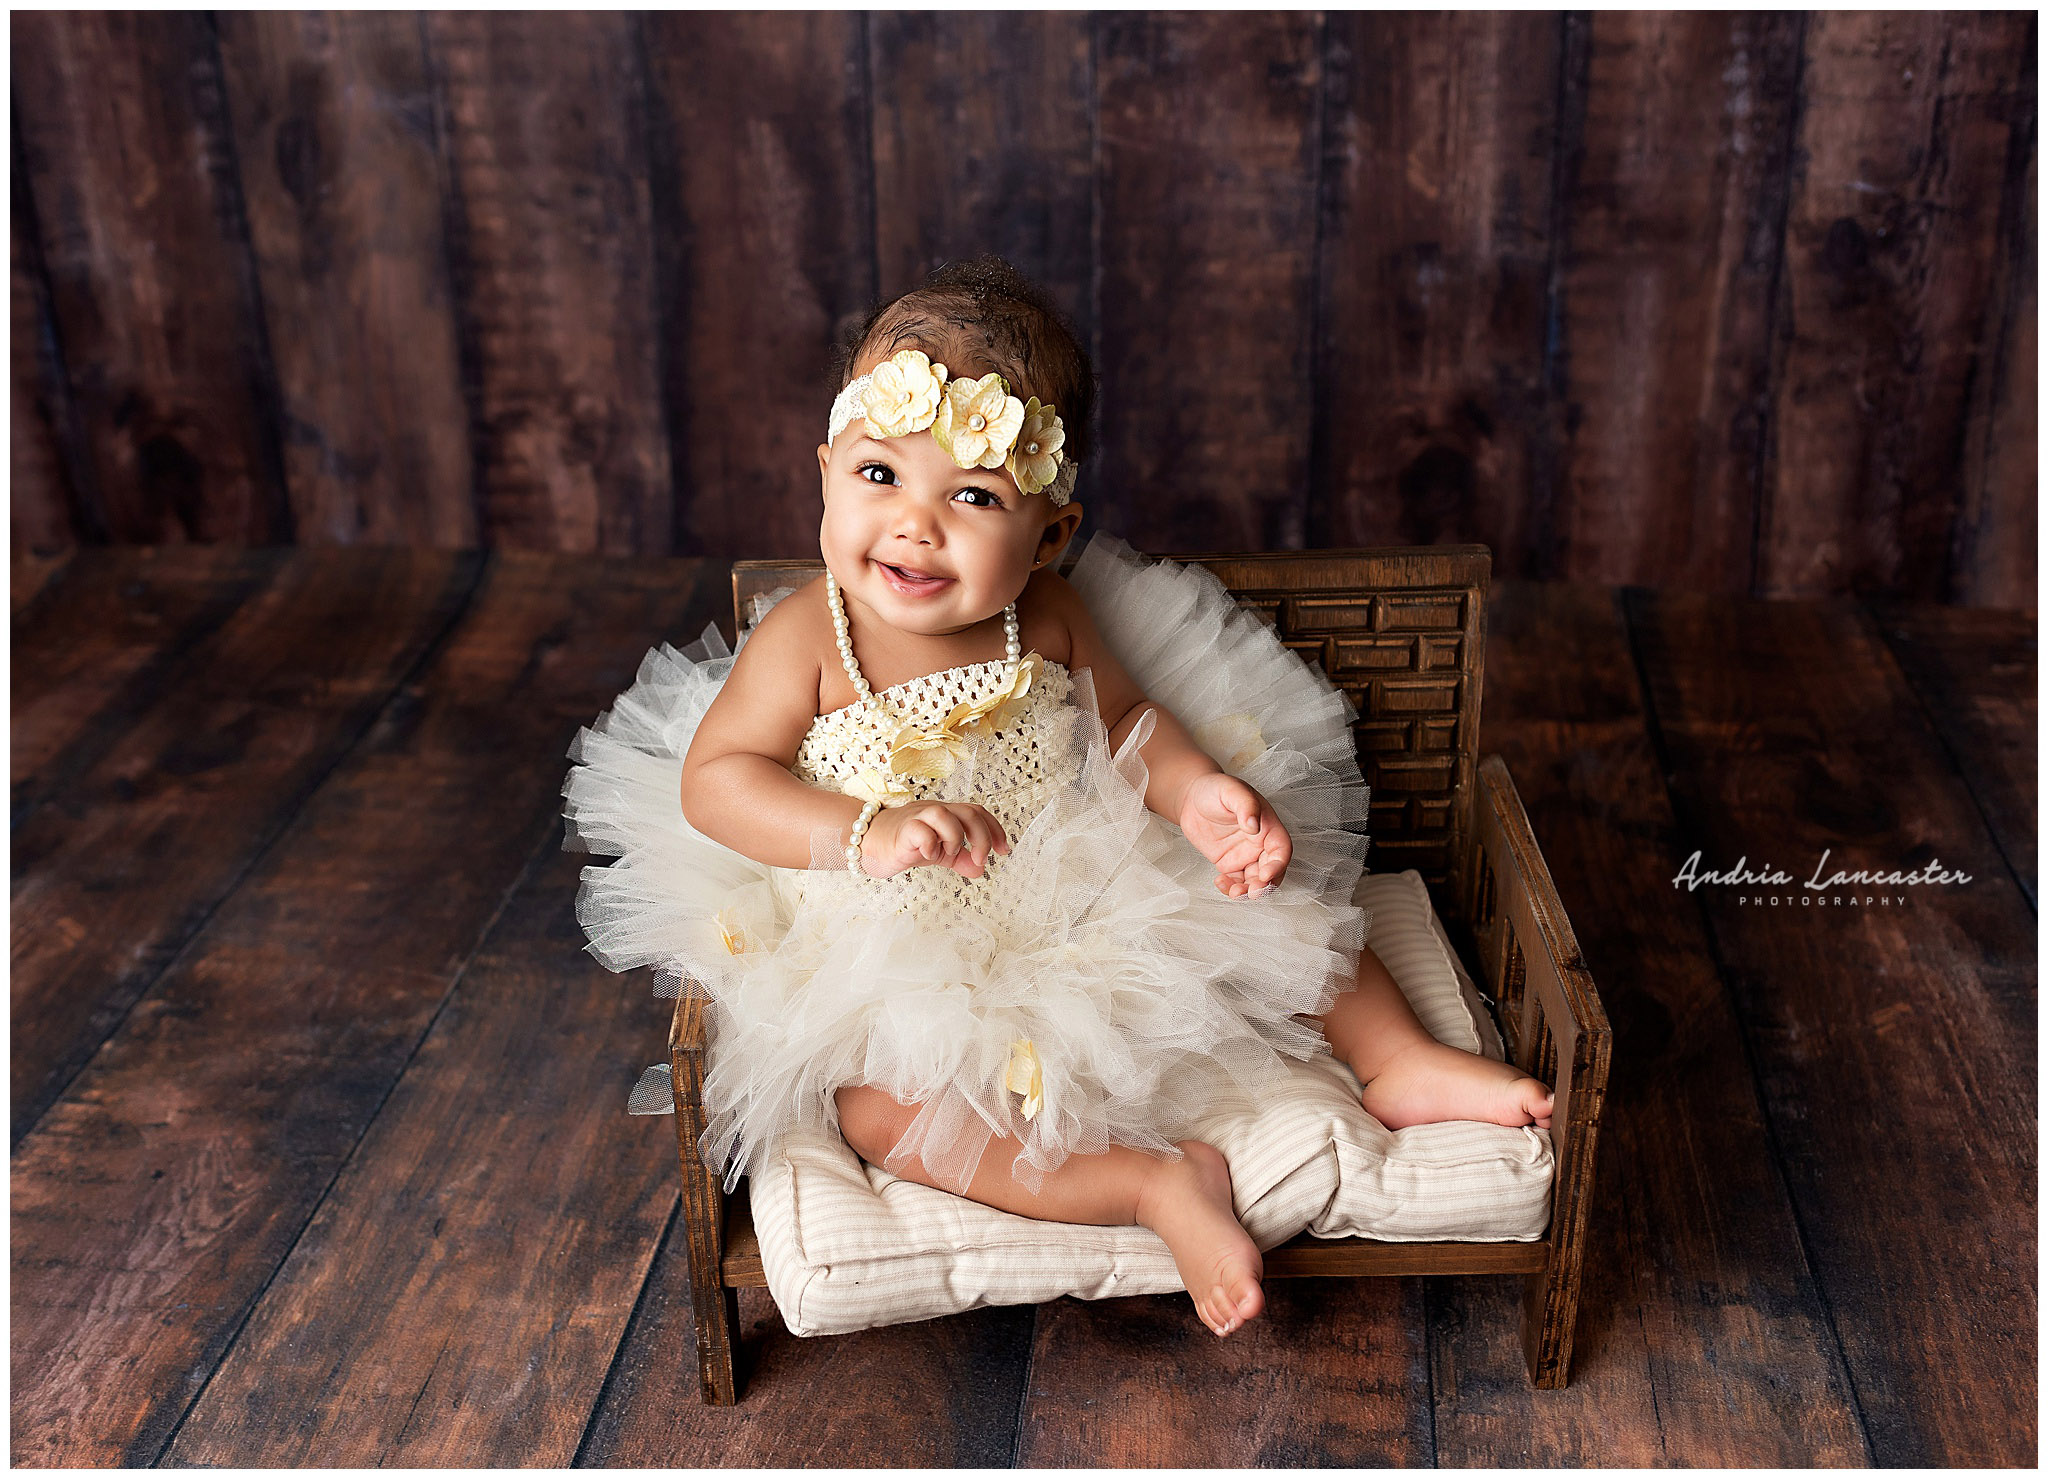 6 month old in studio sitting on bench smiling